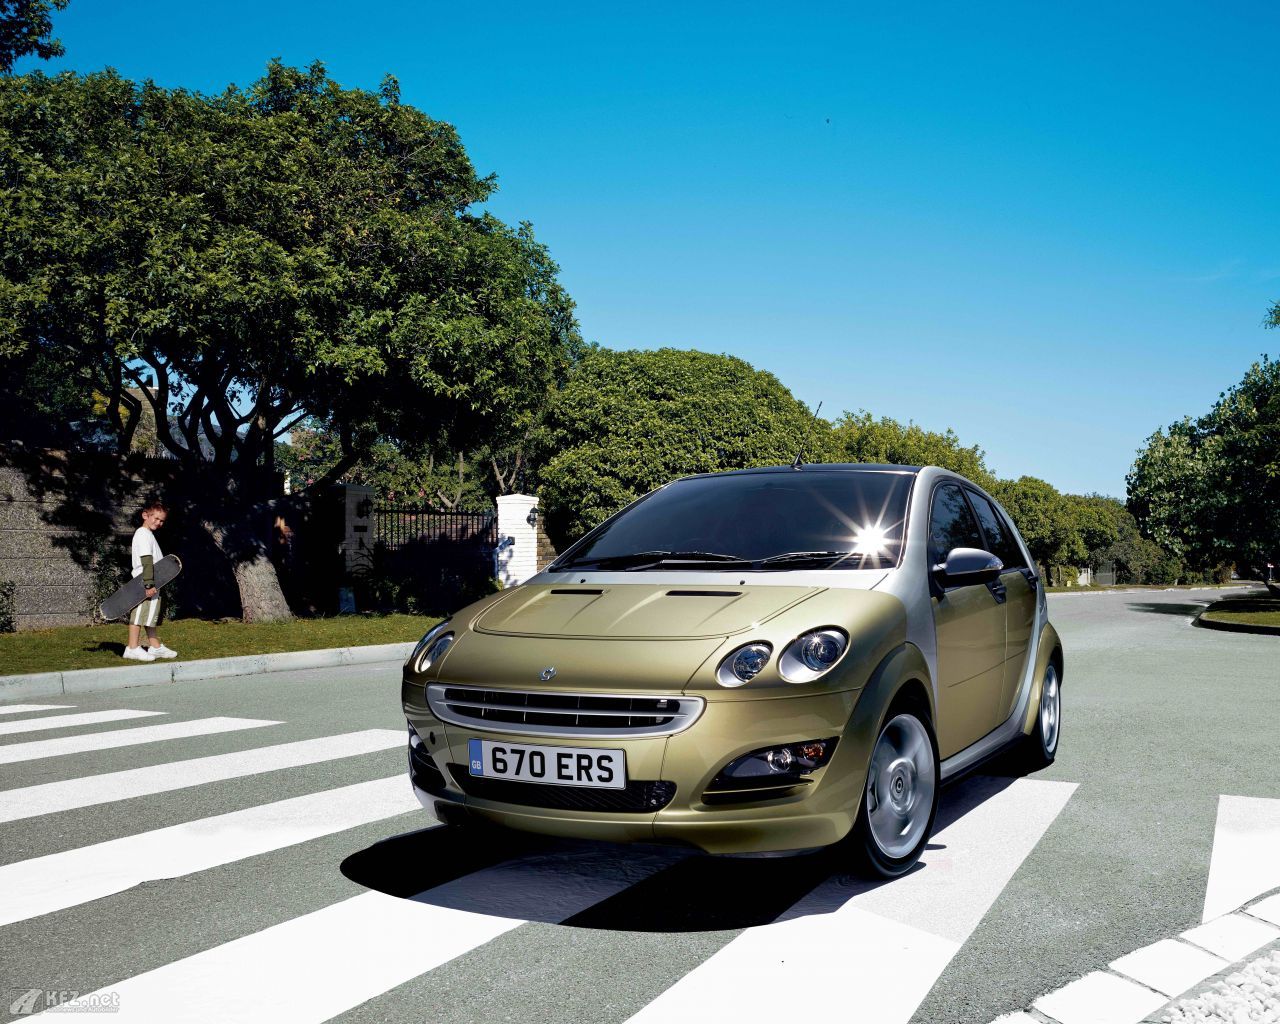 smart-forfour-1280x1024-7